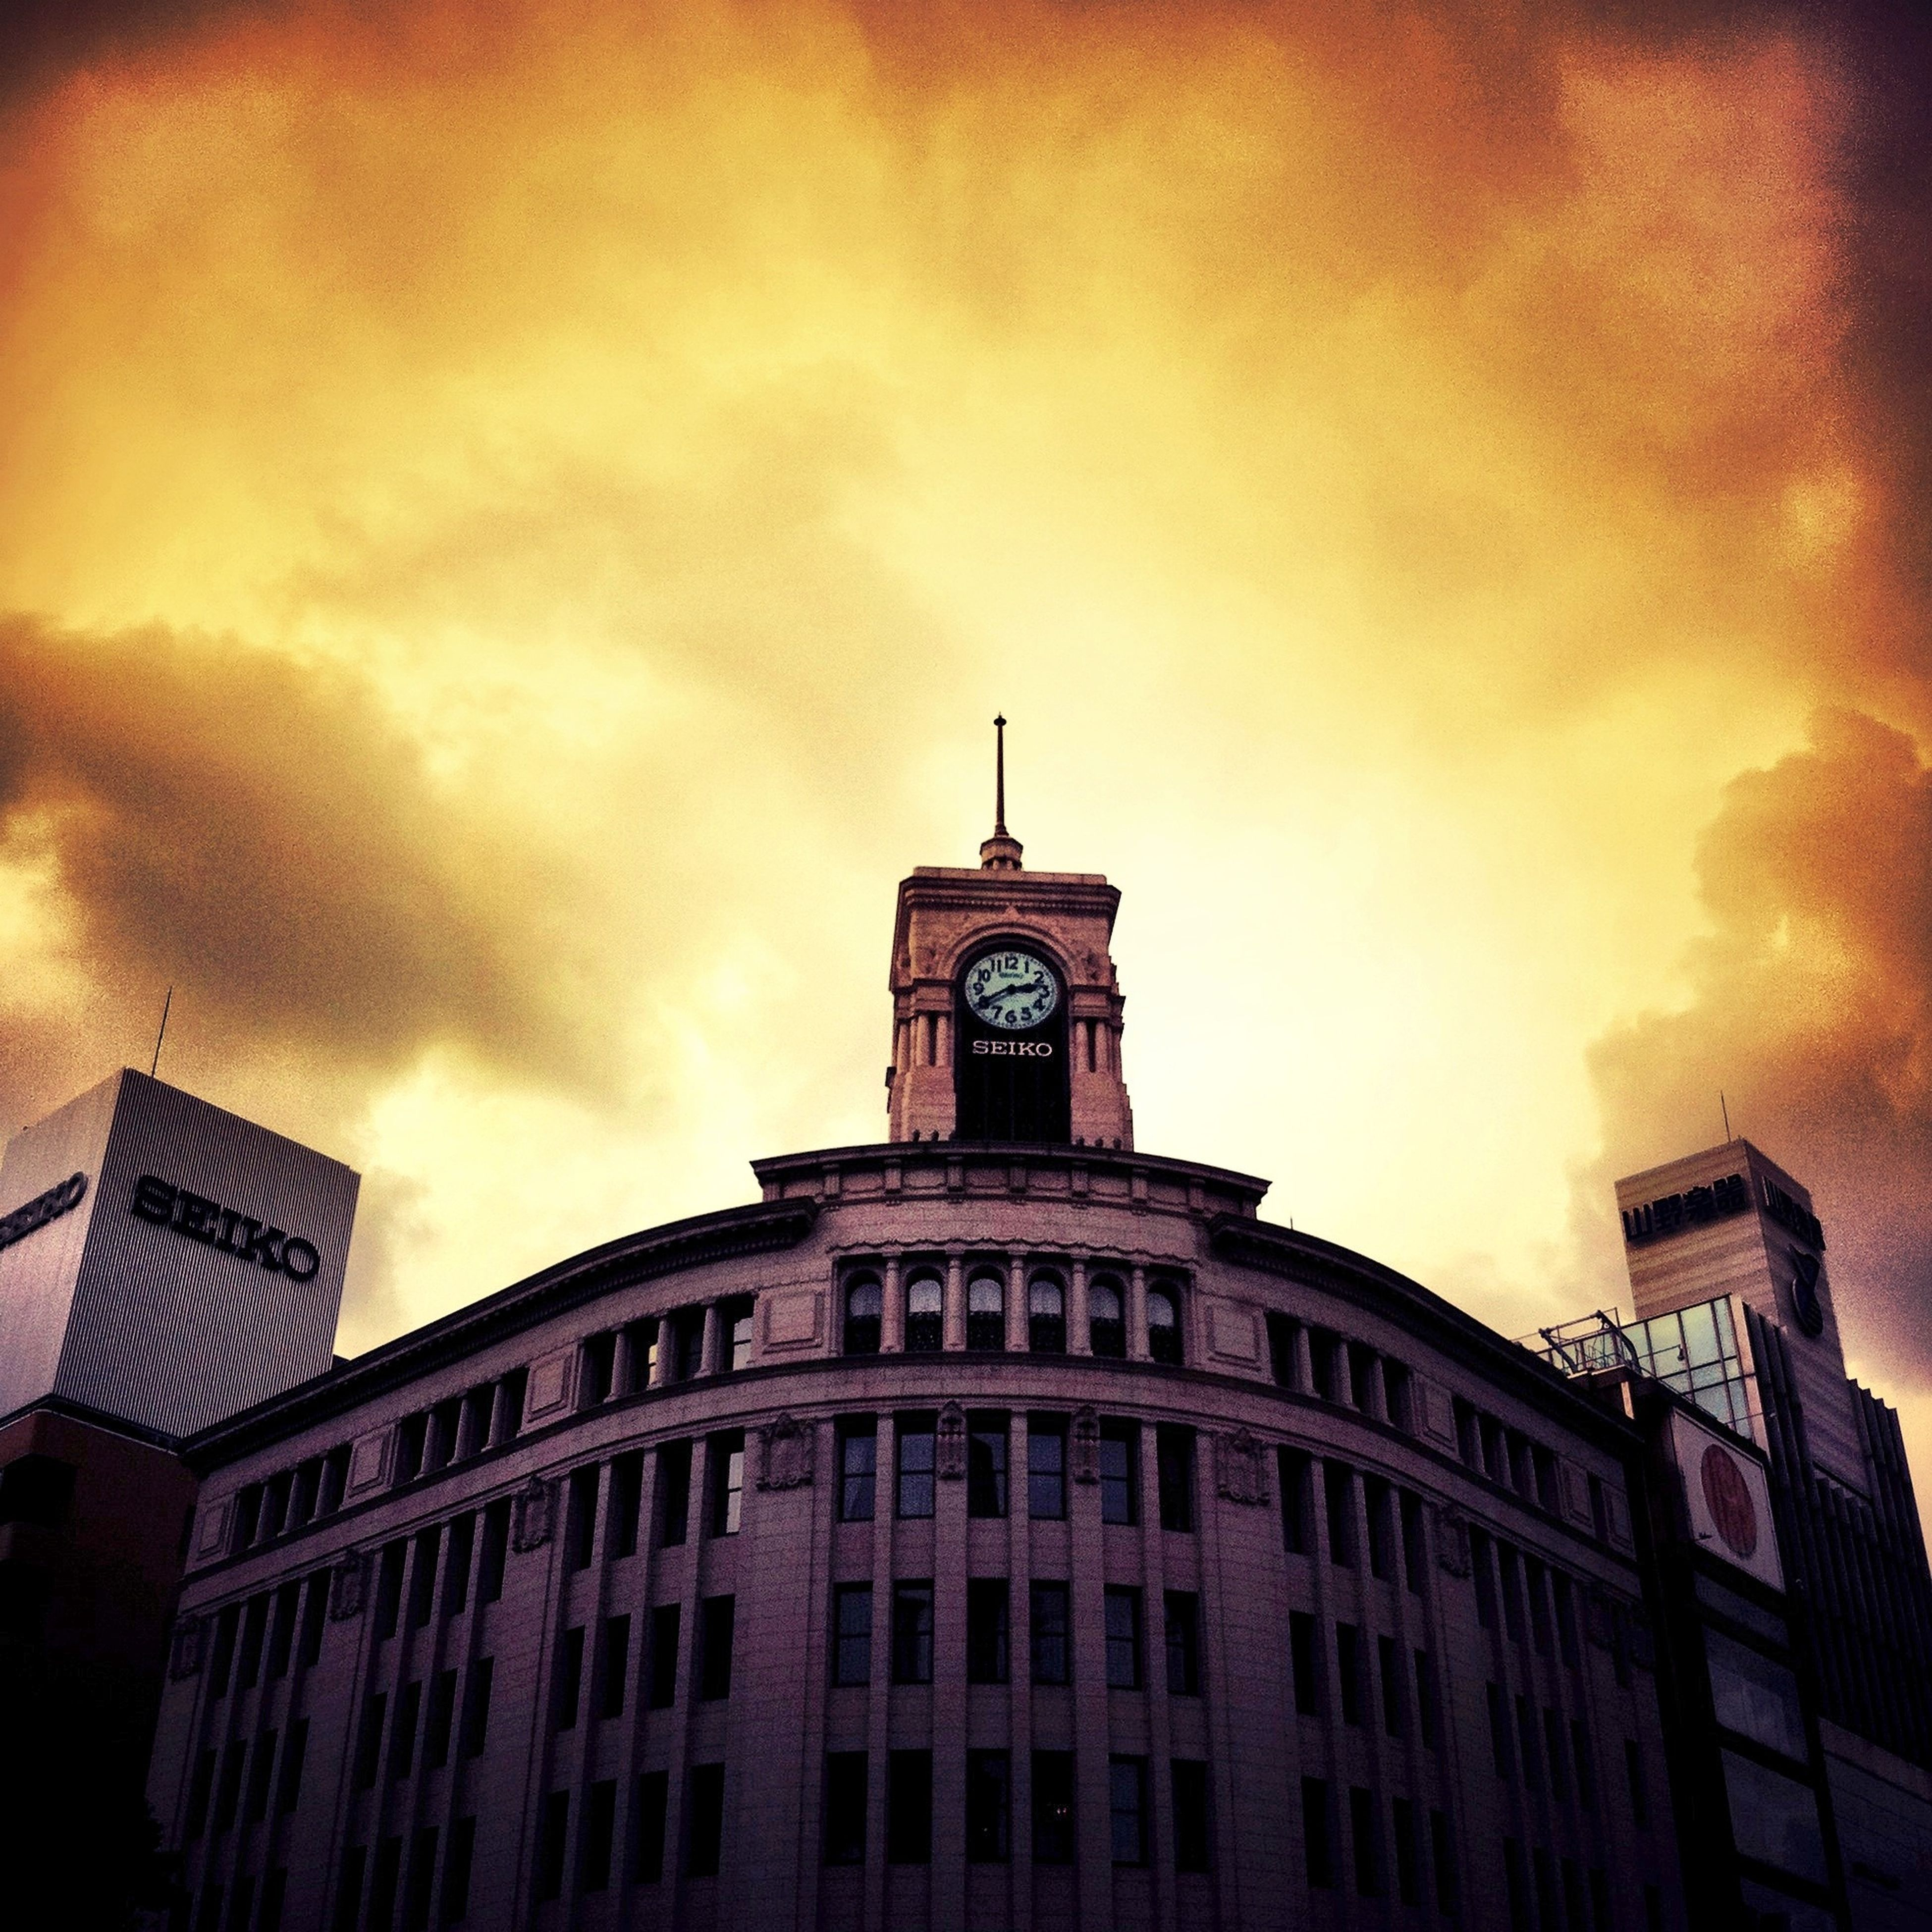 building exterior, architecture, built structure, low angle view, sky, cloud - sky, city, sunset, building, cloudy, high section, cloud, window, outdoors, tower, no people, orange color, residential building, dusk, residential structure